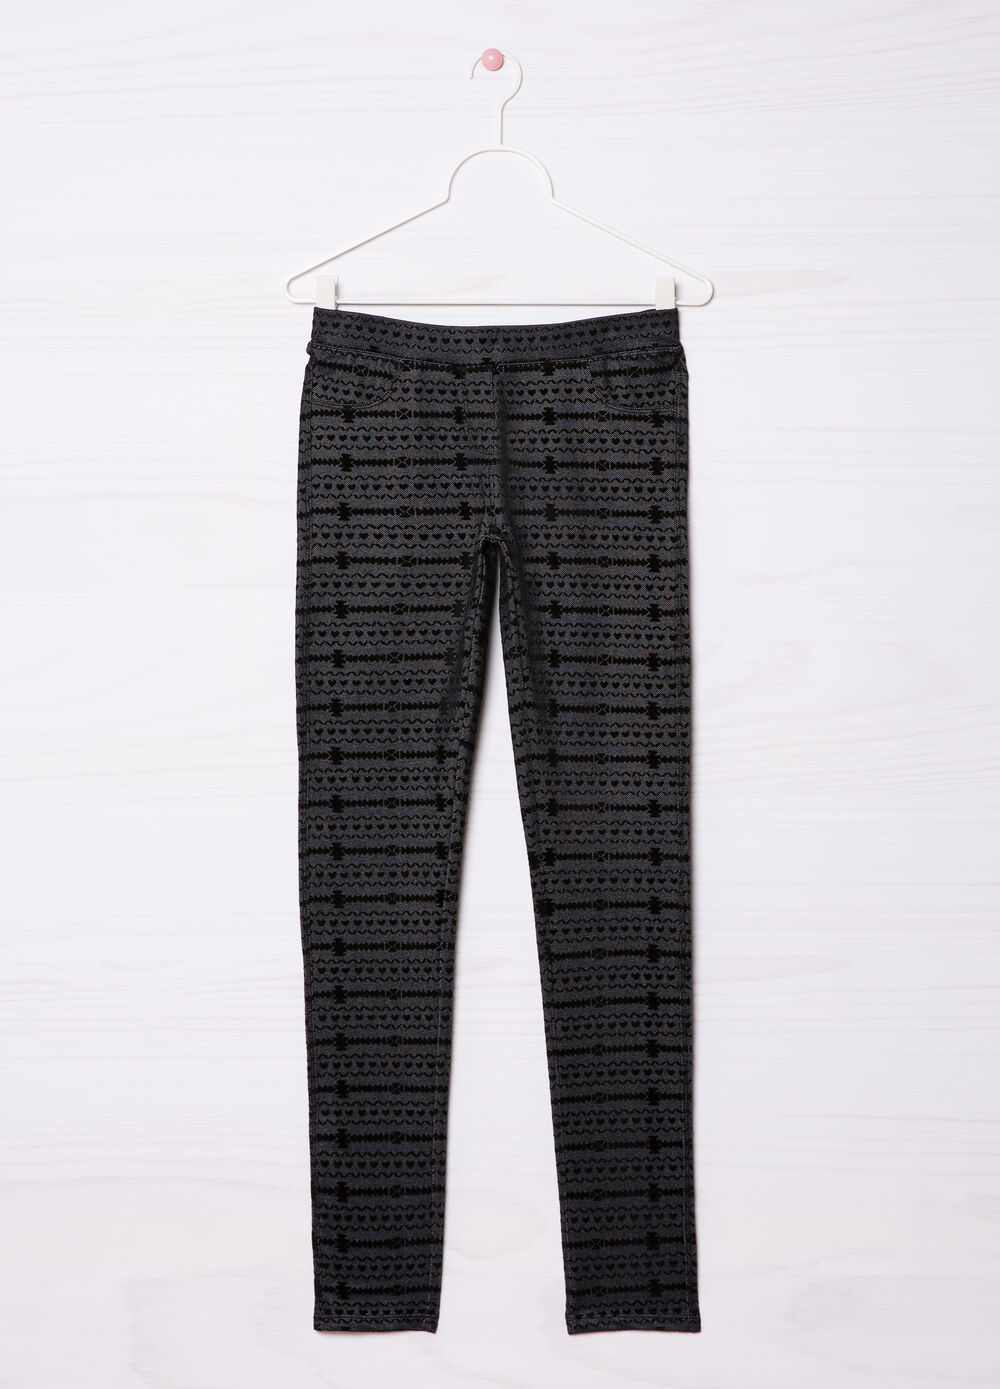 Patterned stretch jeggings